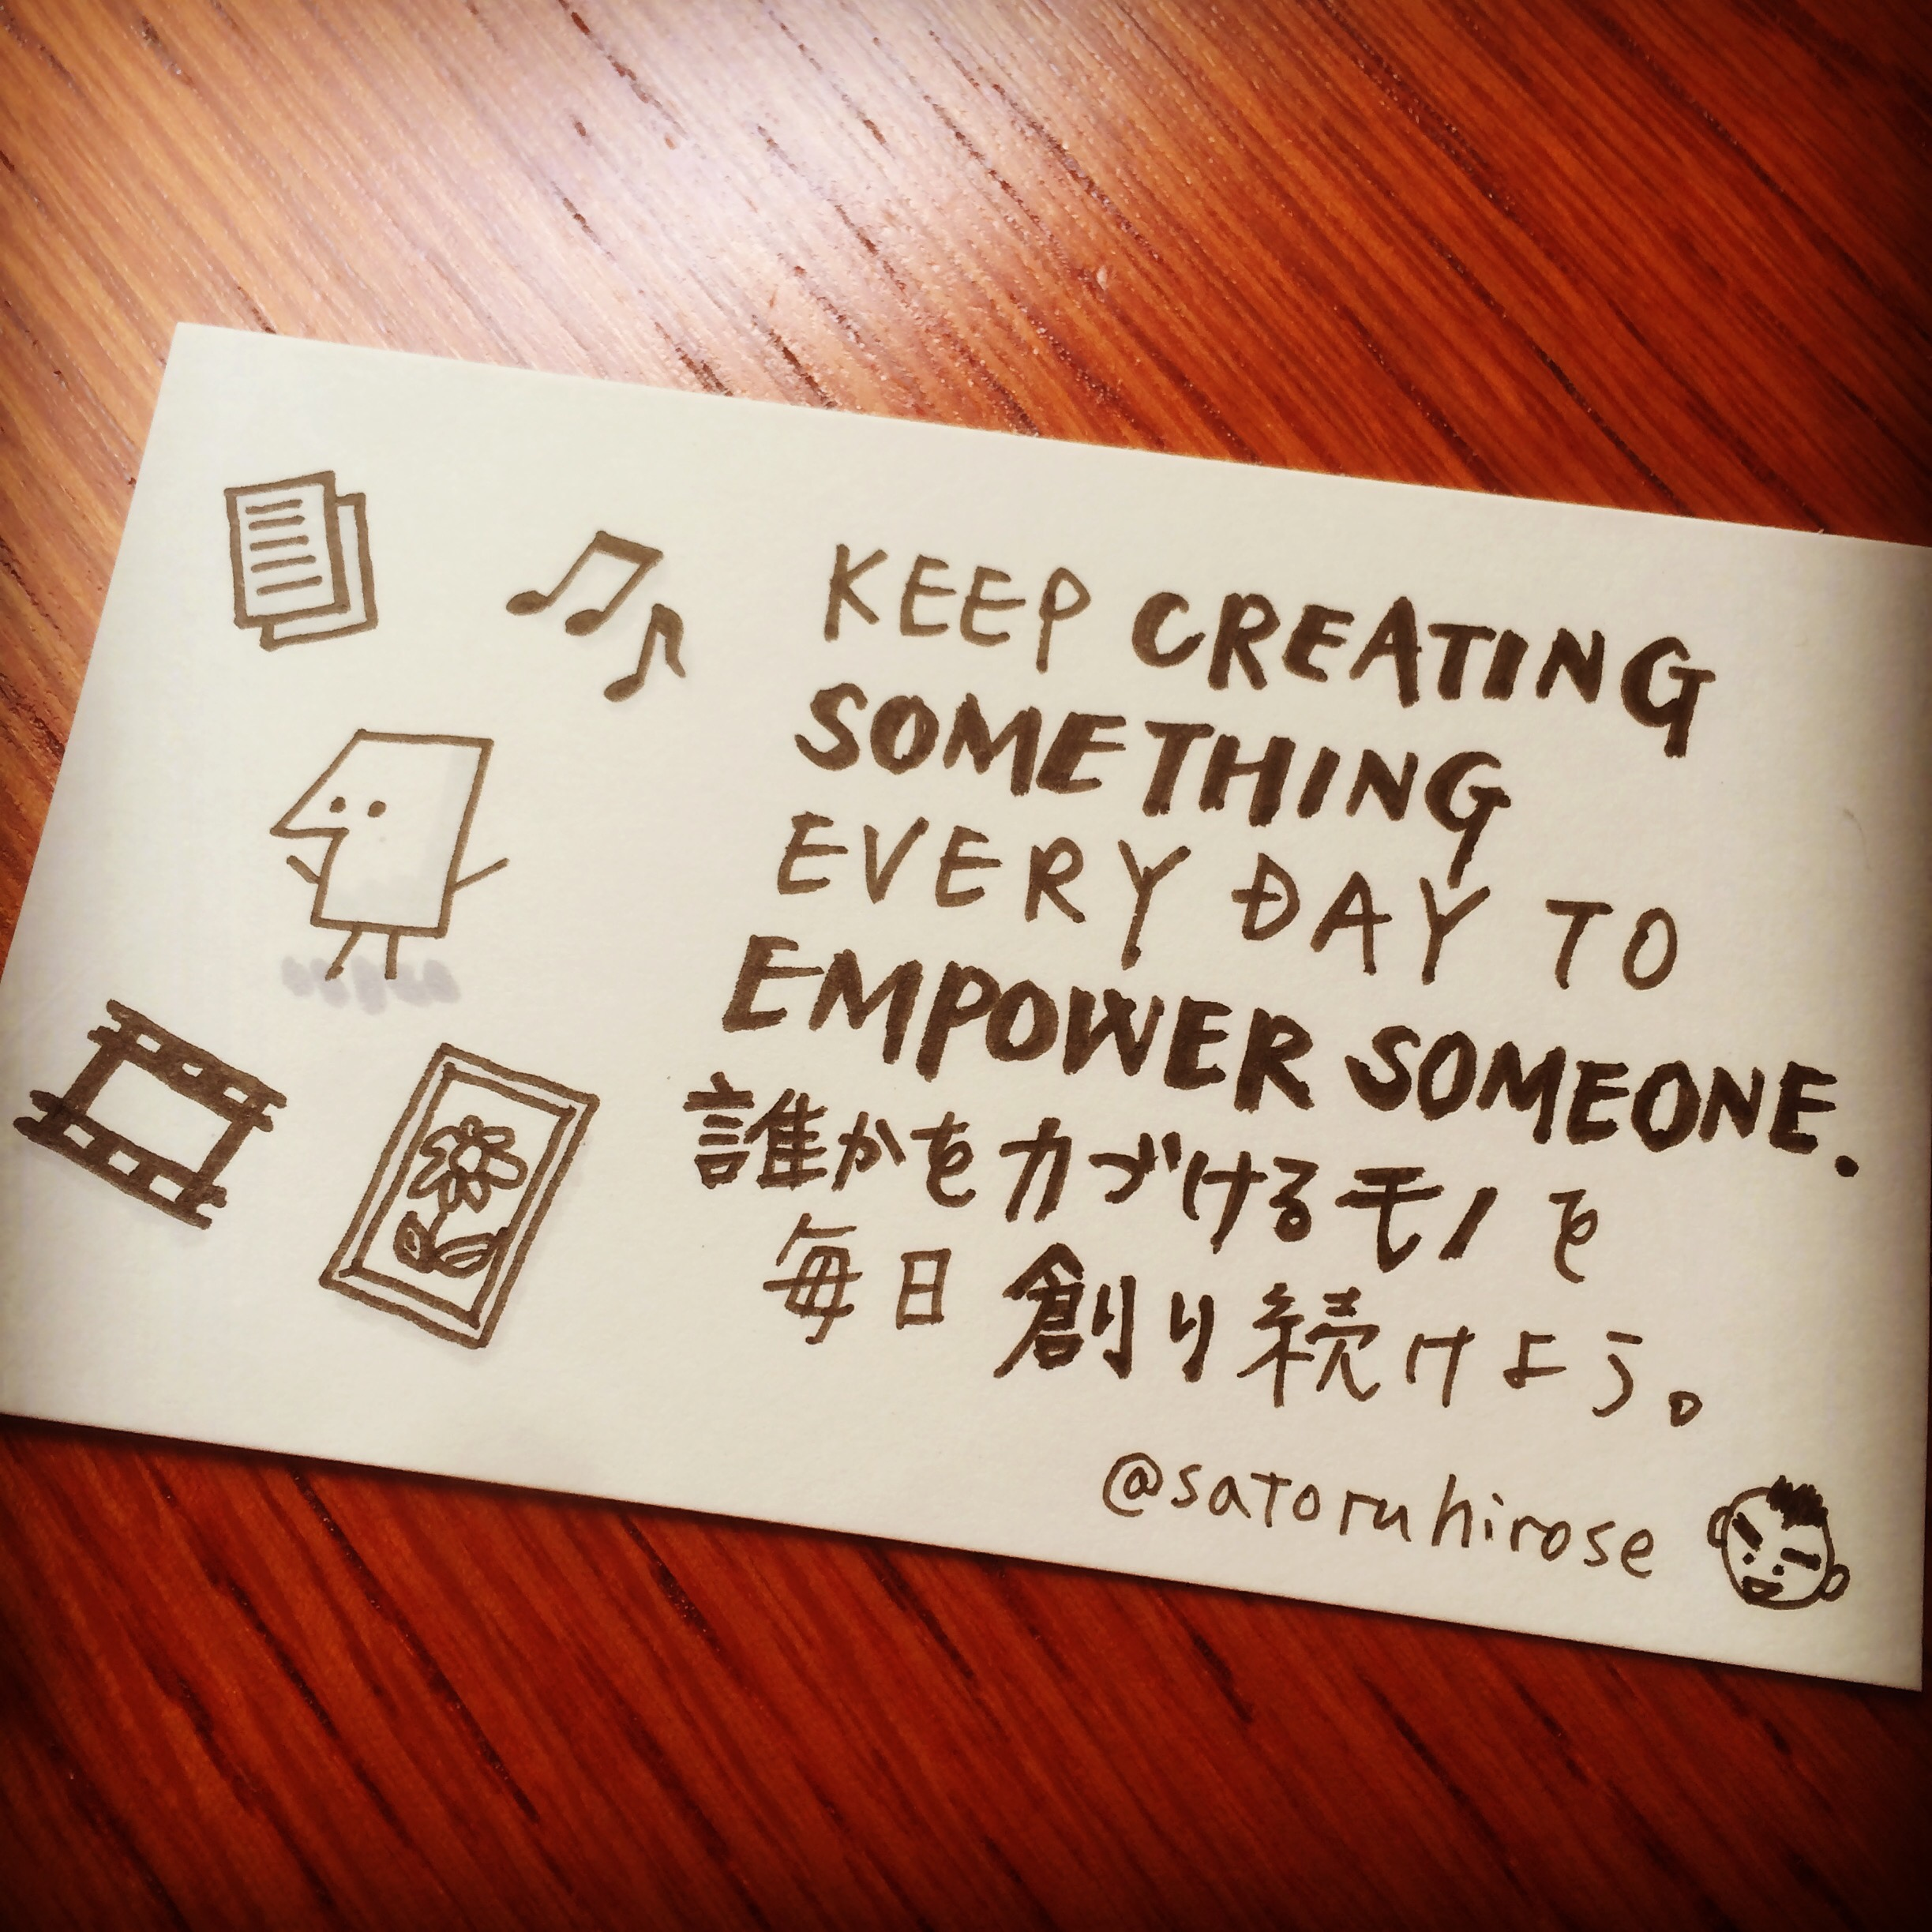 Keep creating something every day to empower someone.